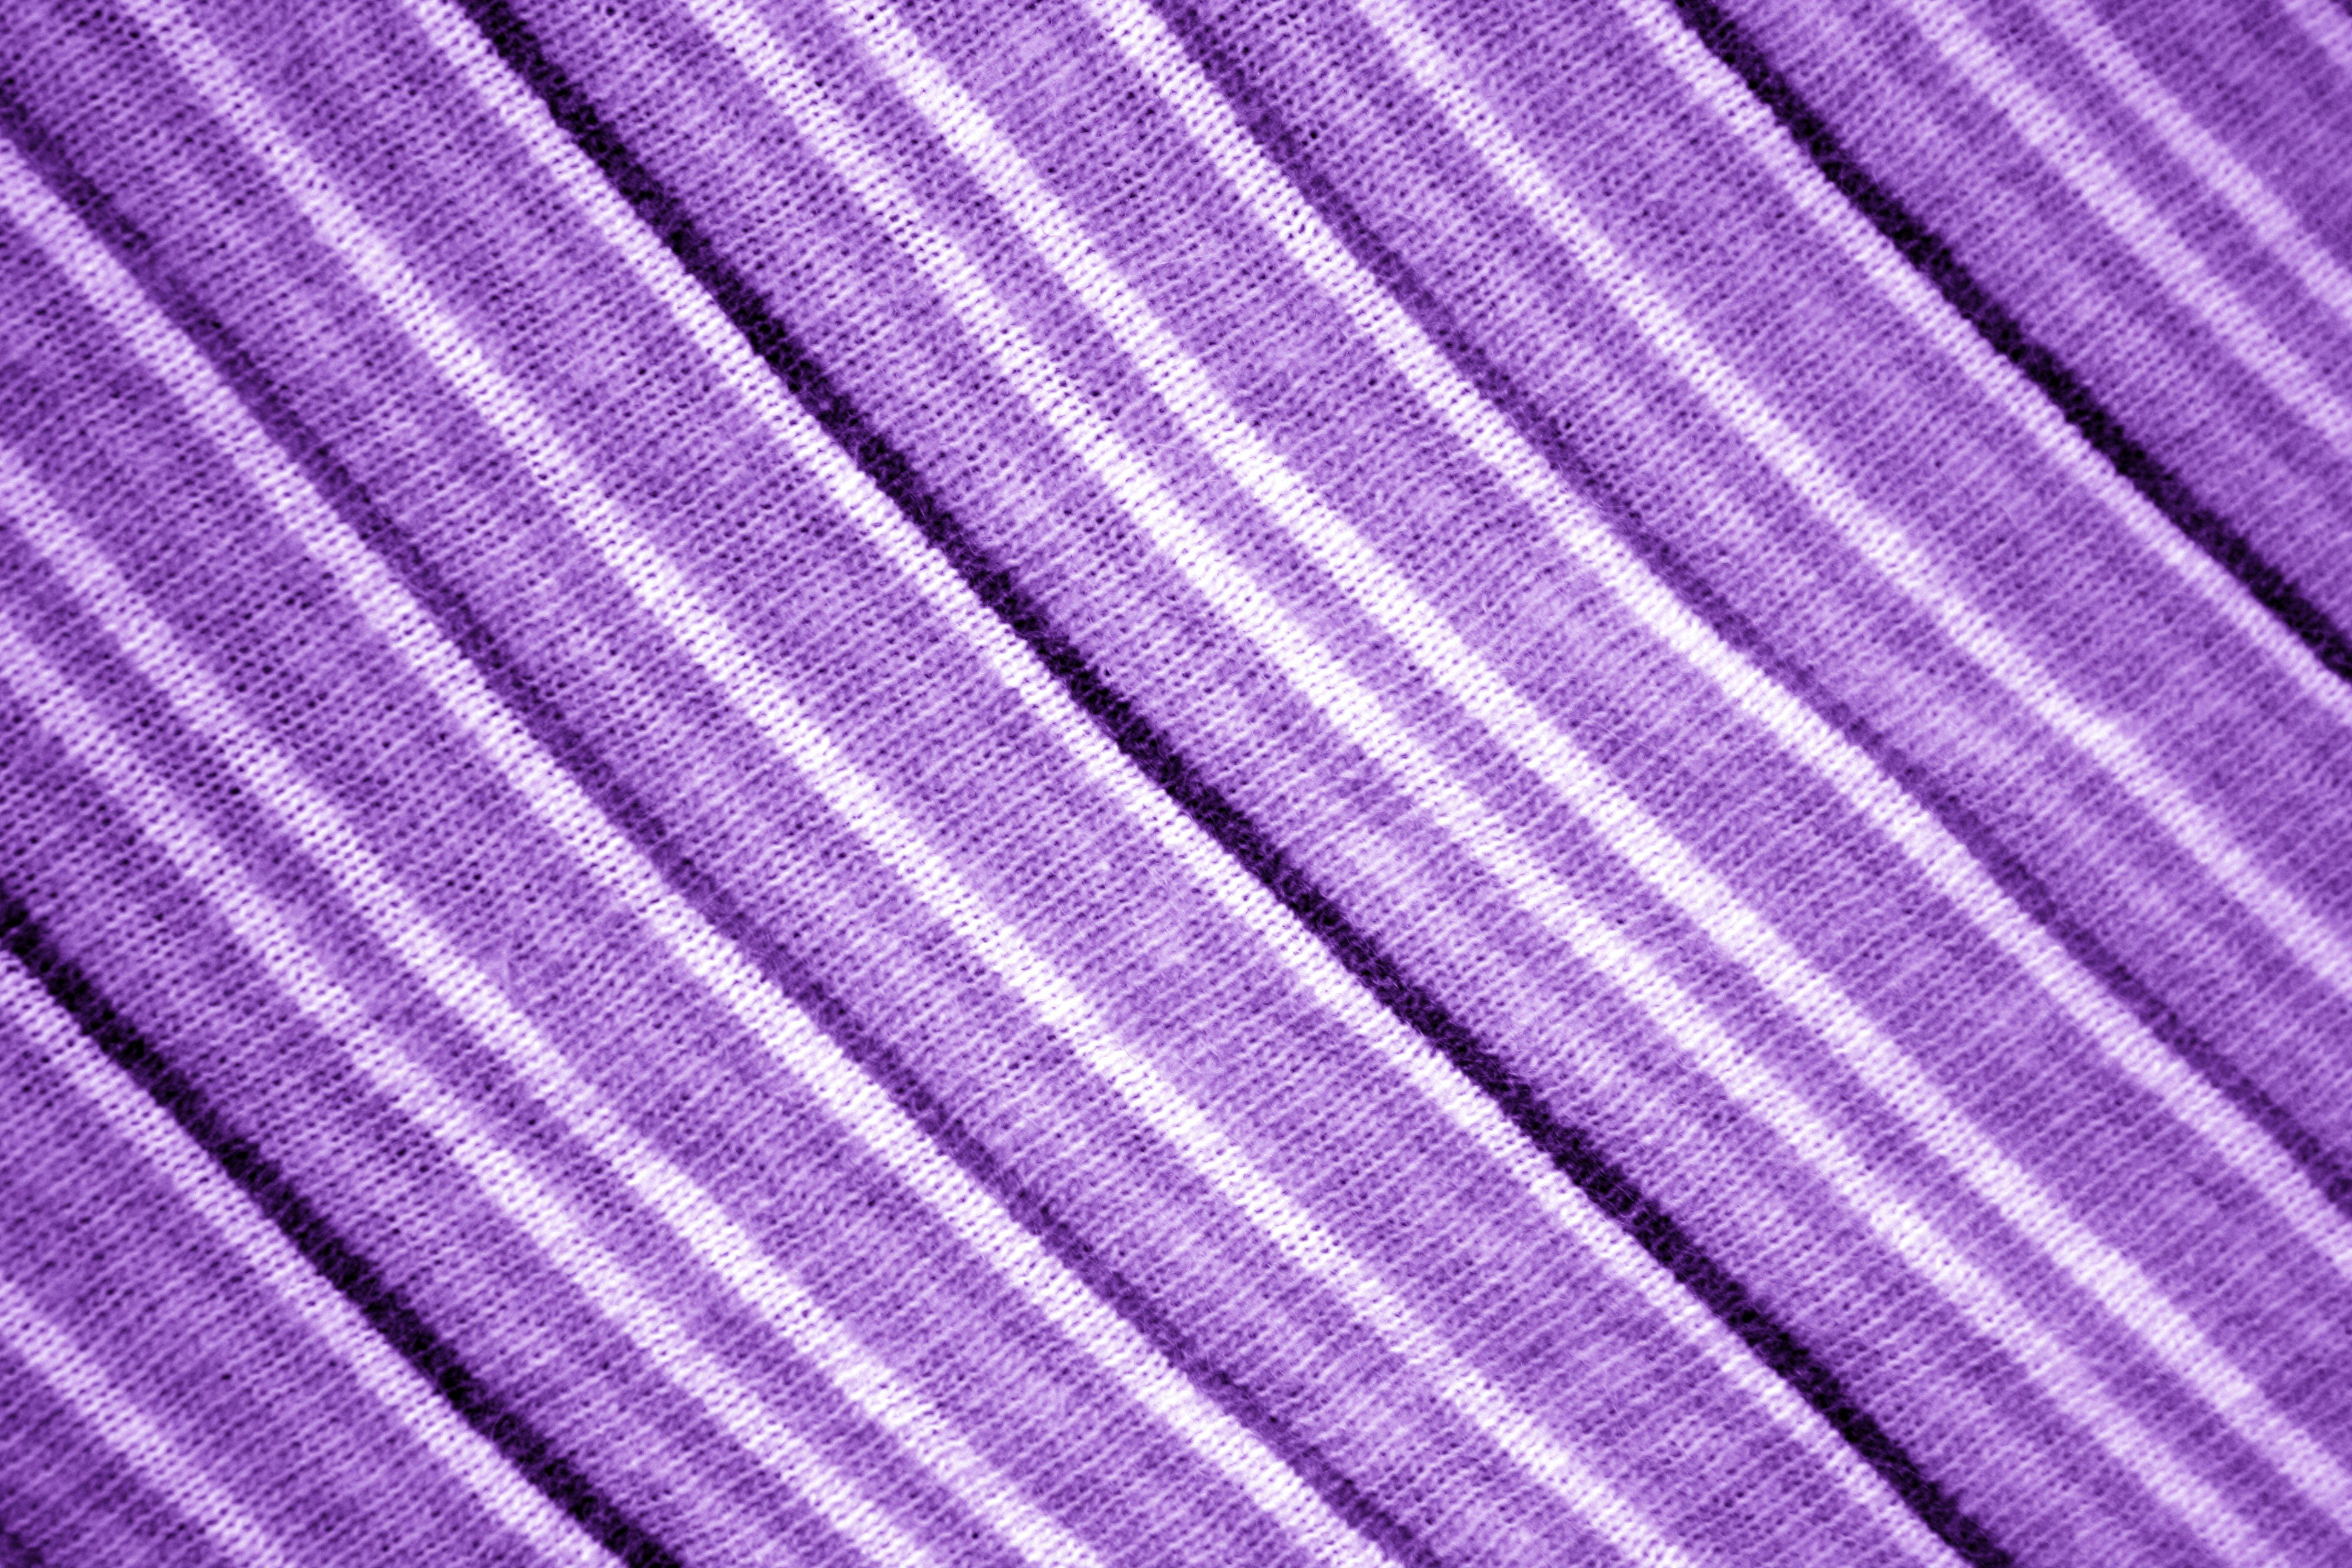 Pink fabric texture free high resolution photo dimensions 3888 - Free Fabric Textures Diagonally Striped Purple Knit Fabric Texture Free High Resolution